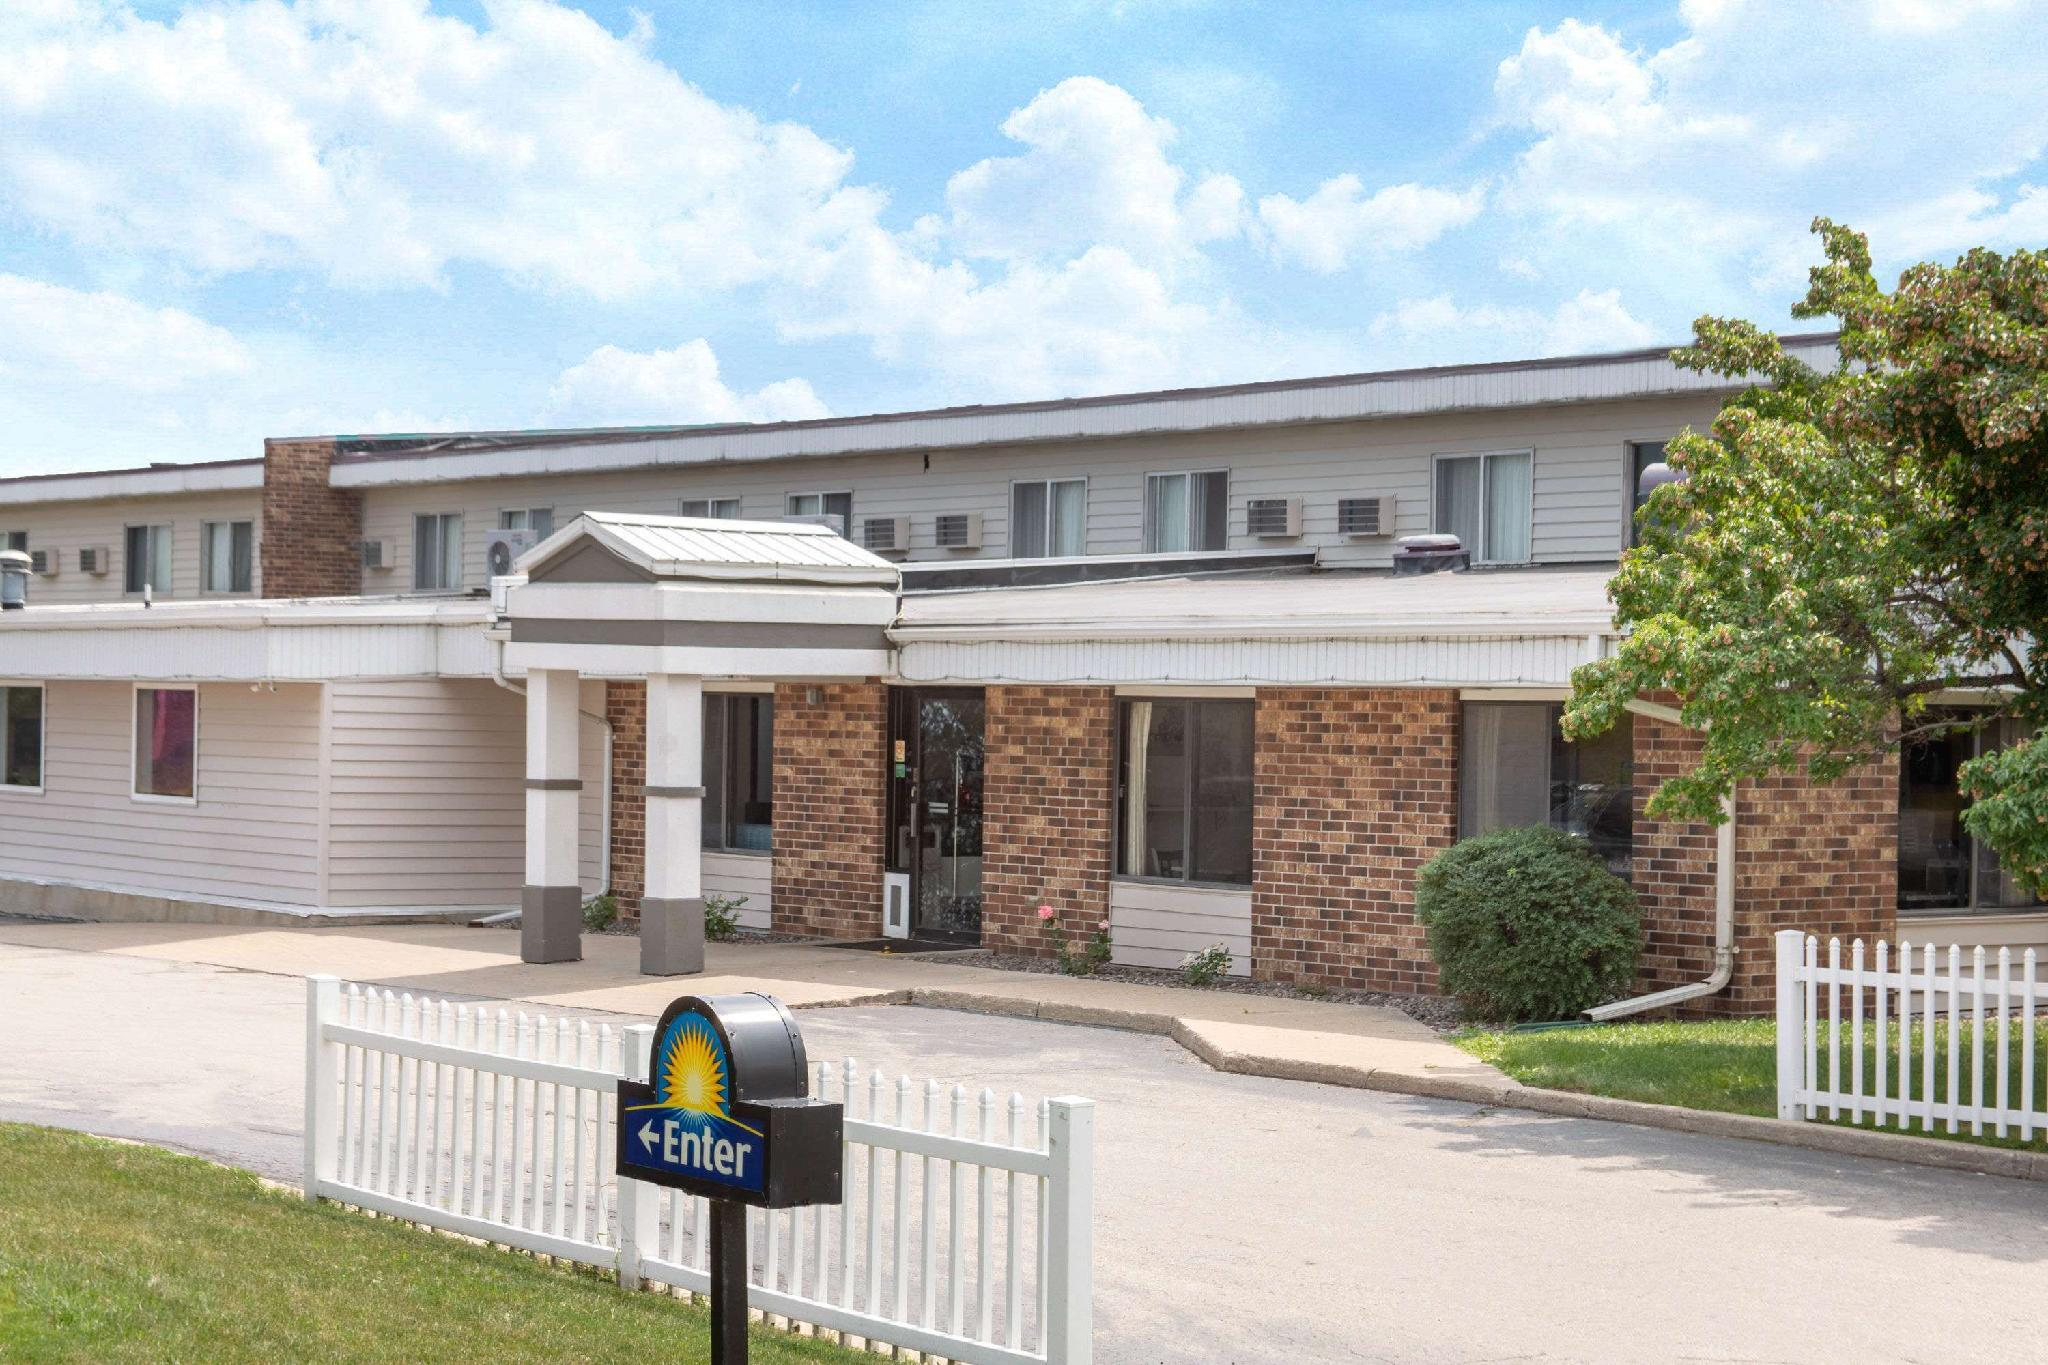 Days Inn By Wyndham Fond Du Lac